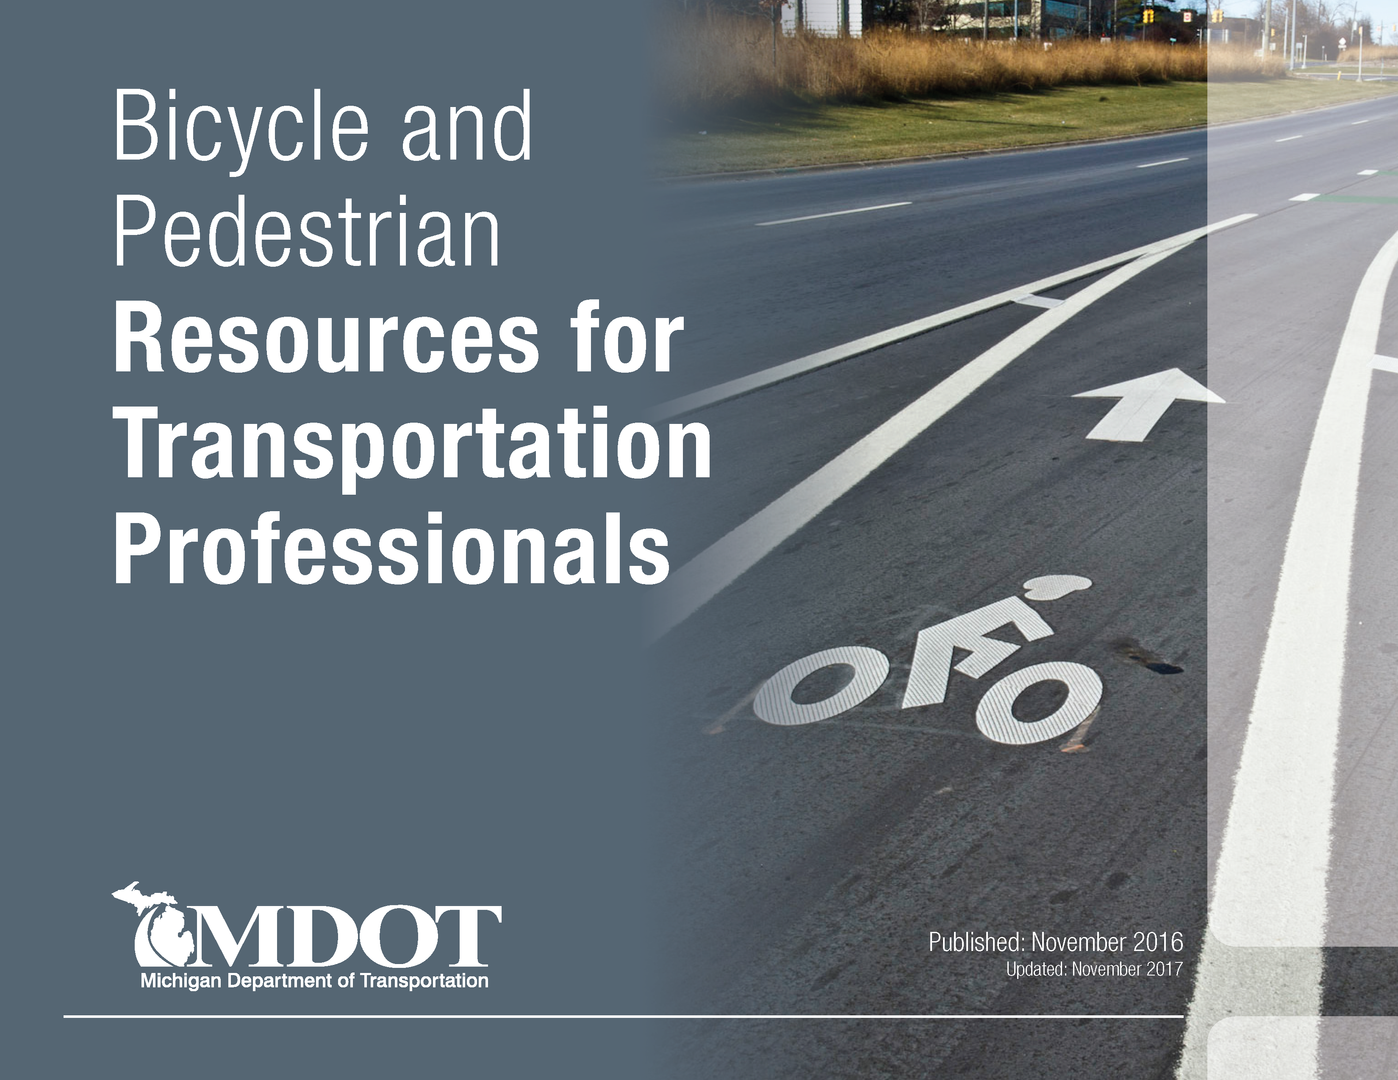 MDOT Resources for Transportation Professionals